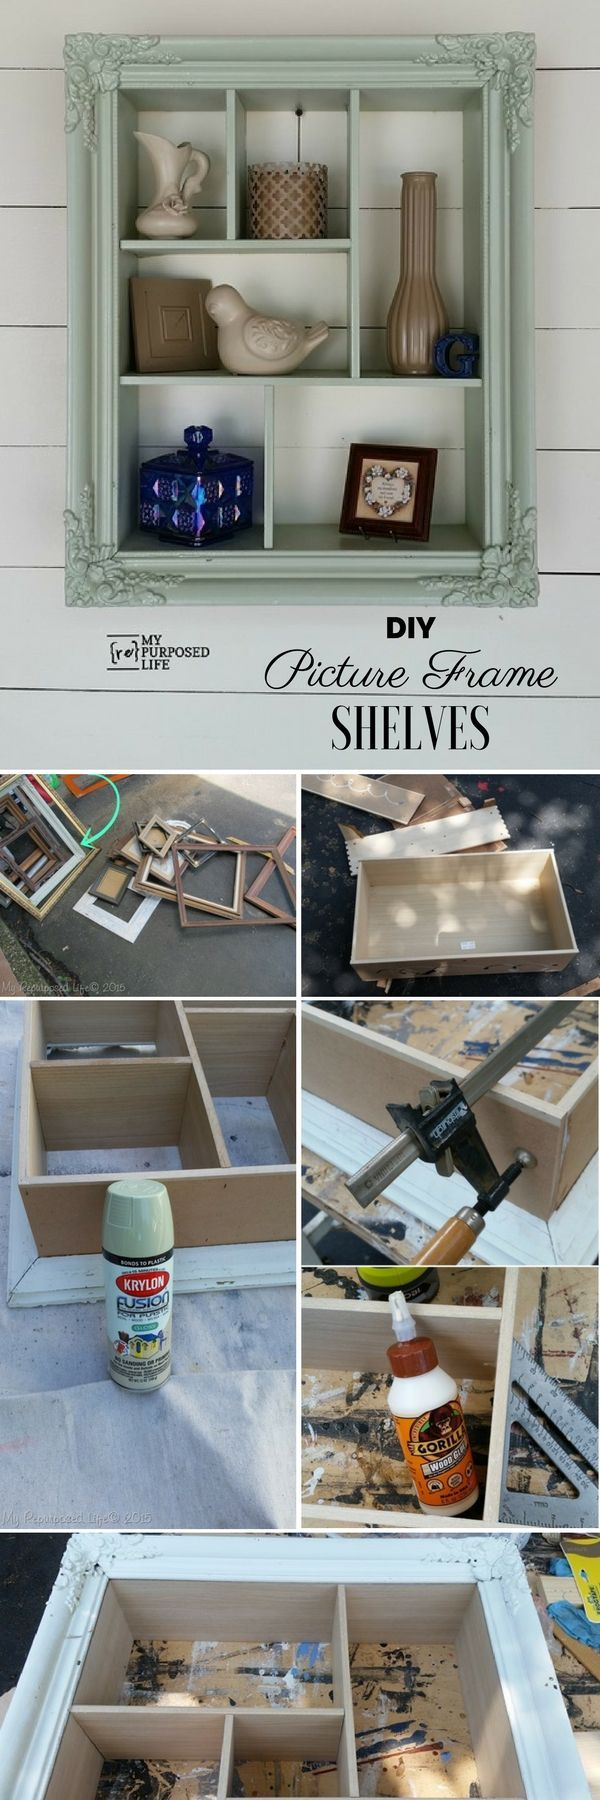 Check out the tutorial: #DIY Picture Frame Shelves @istandarddesign ...